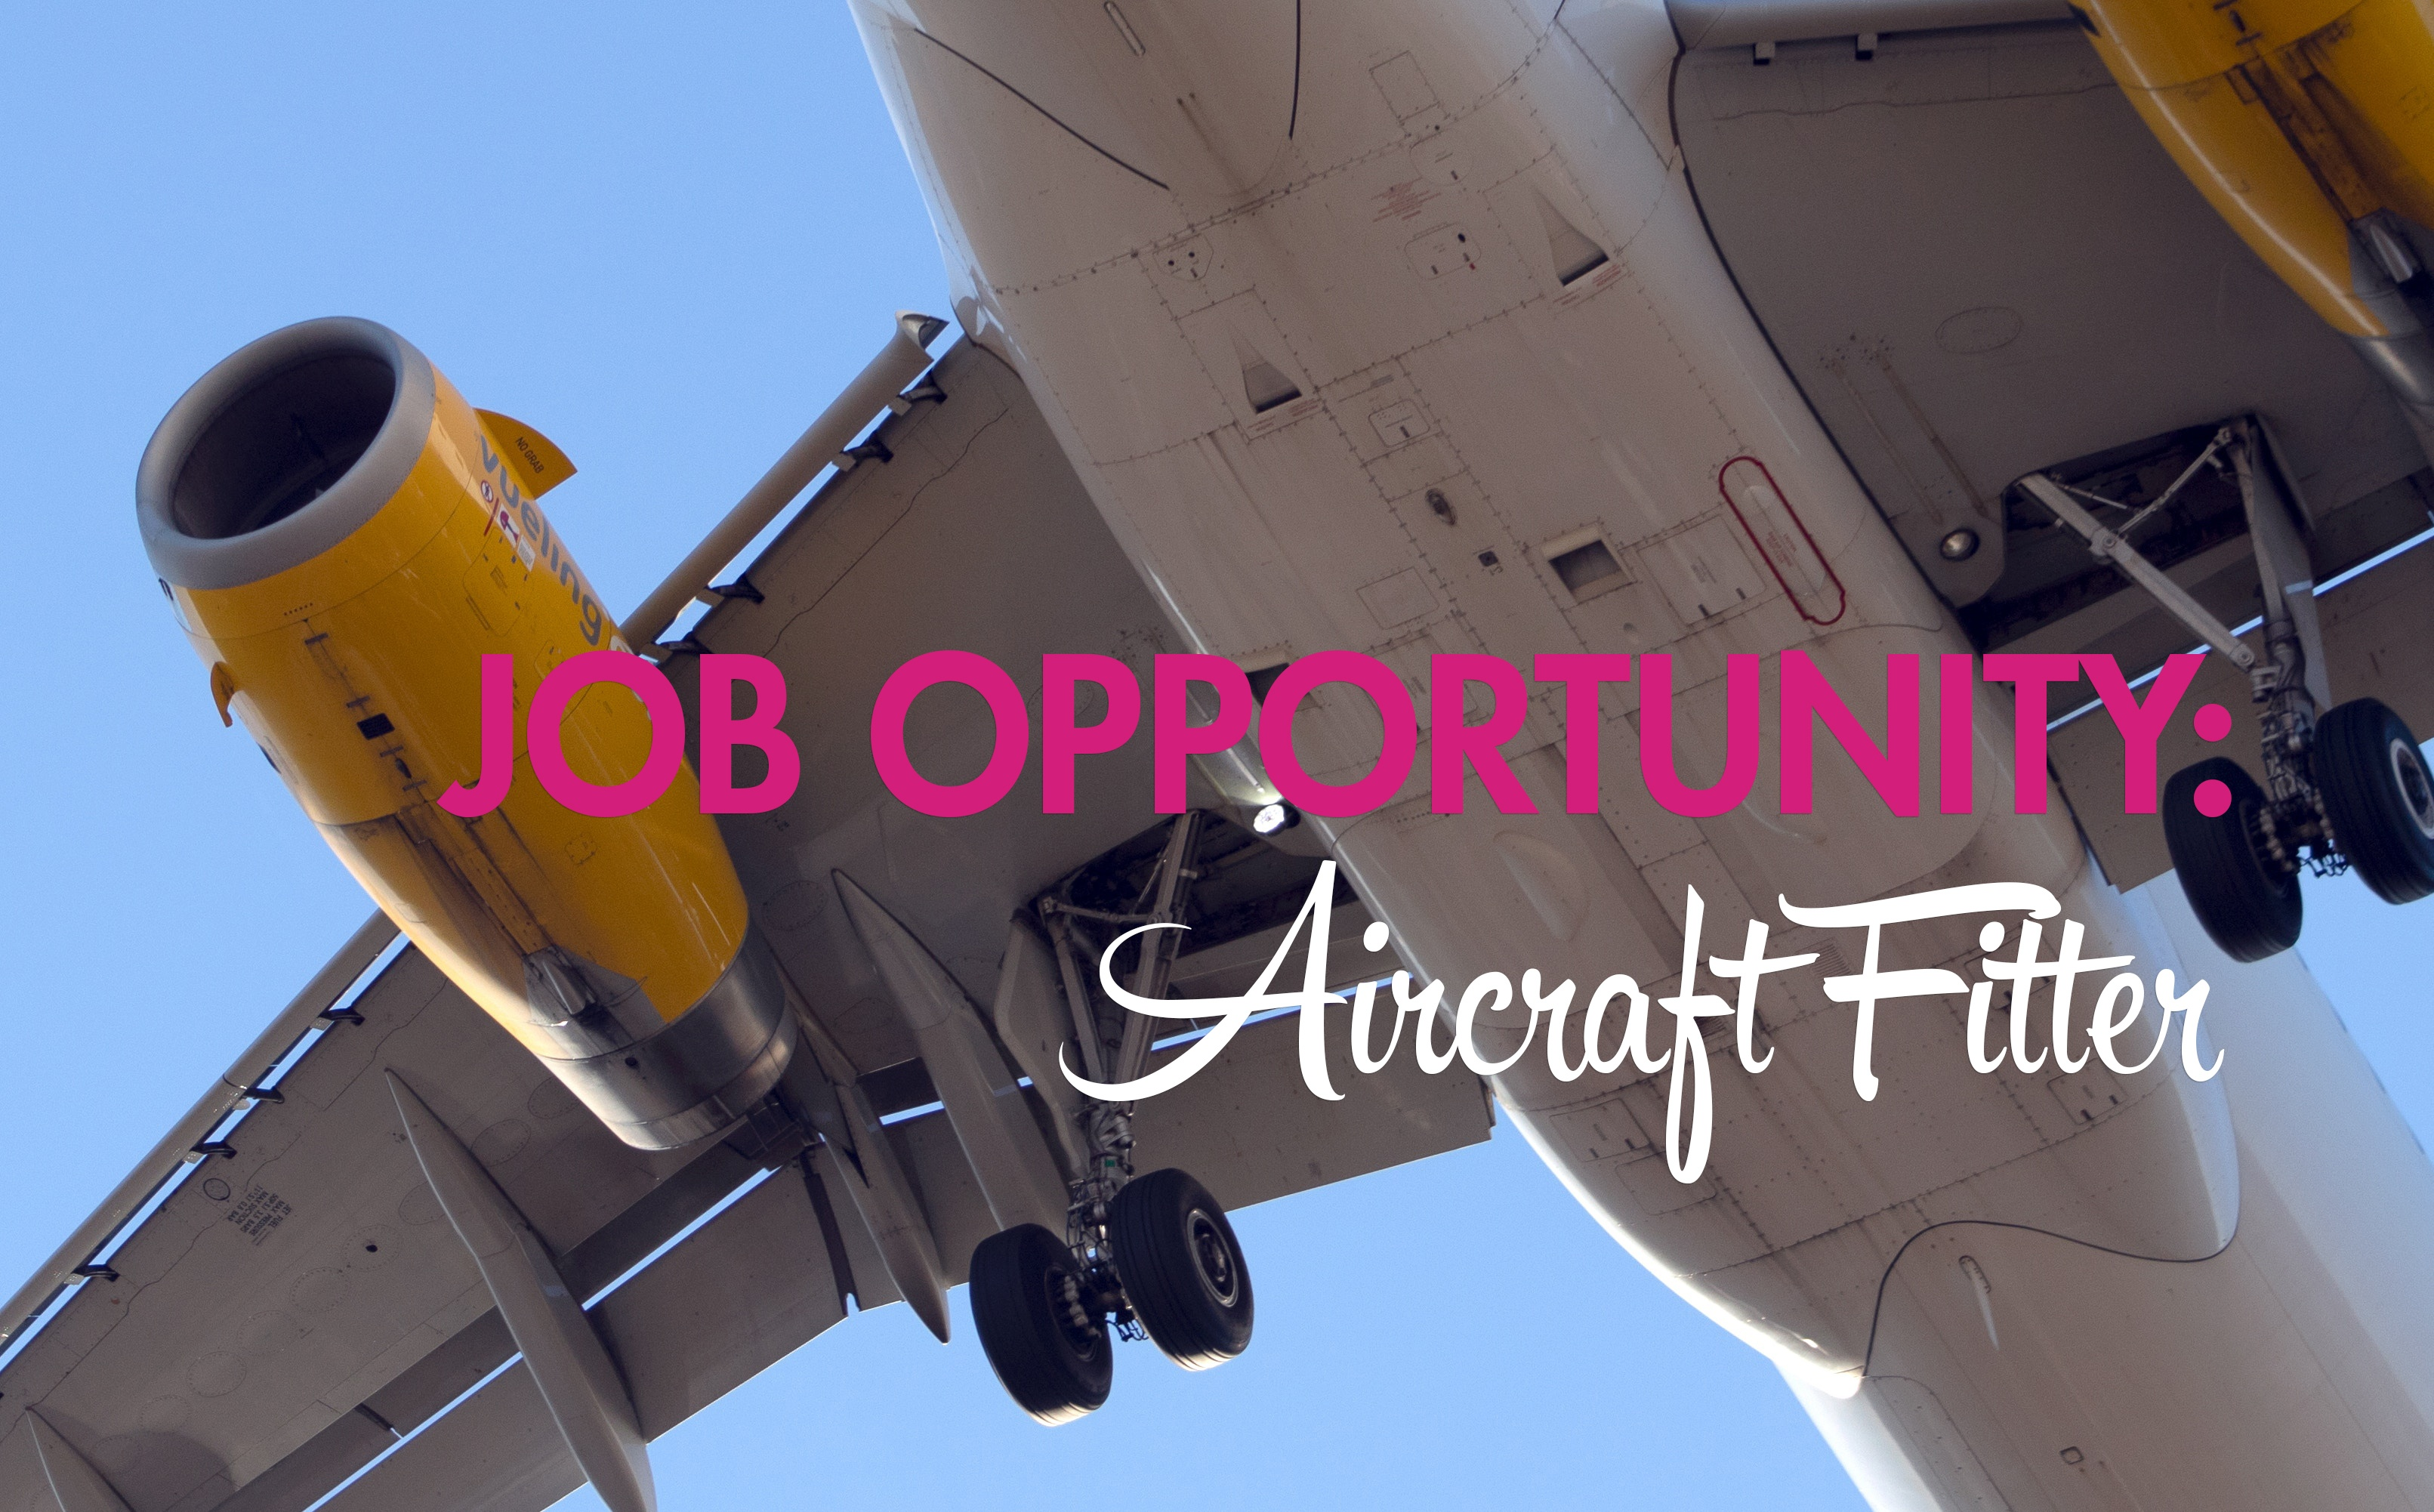 Job opportunity- aircraft fitters